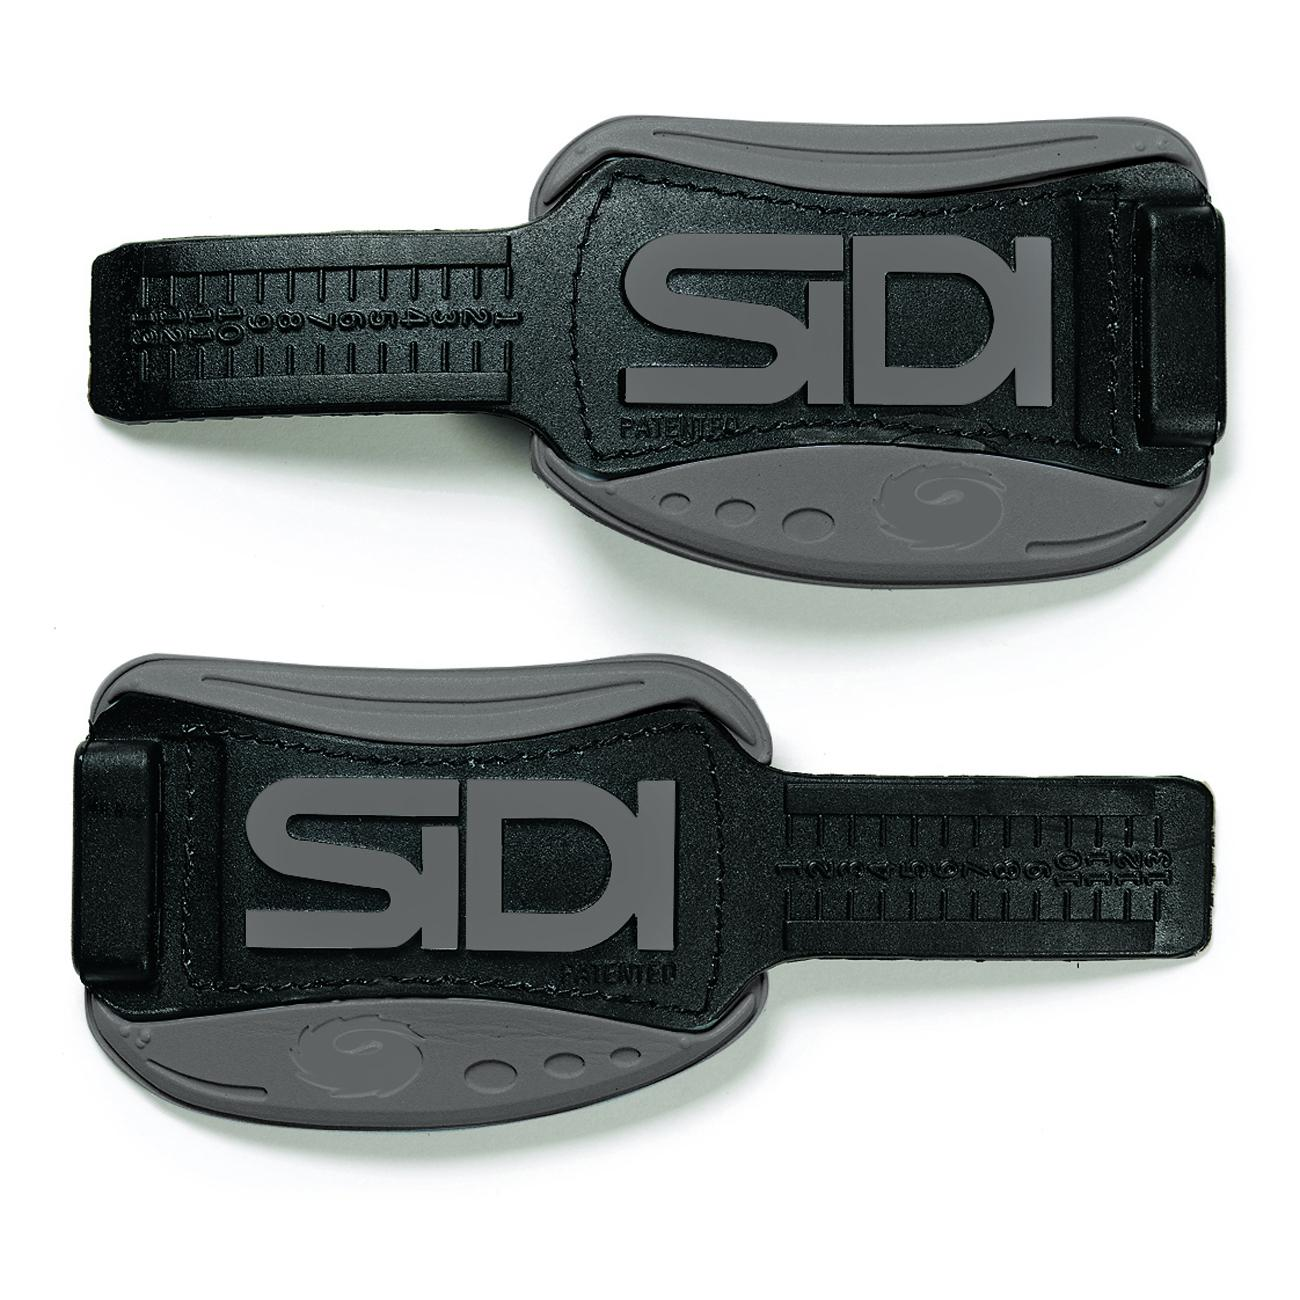 Sidi Schoensluiting strap Zwart Unisex / SP Soft Instep 2 (46) Black Shadow